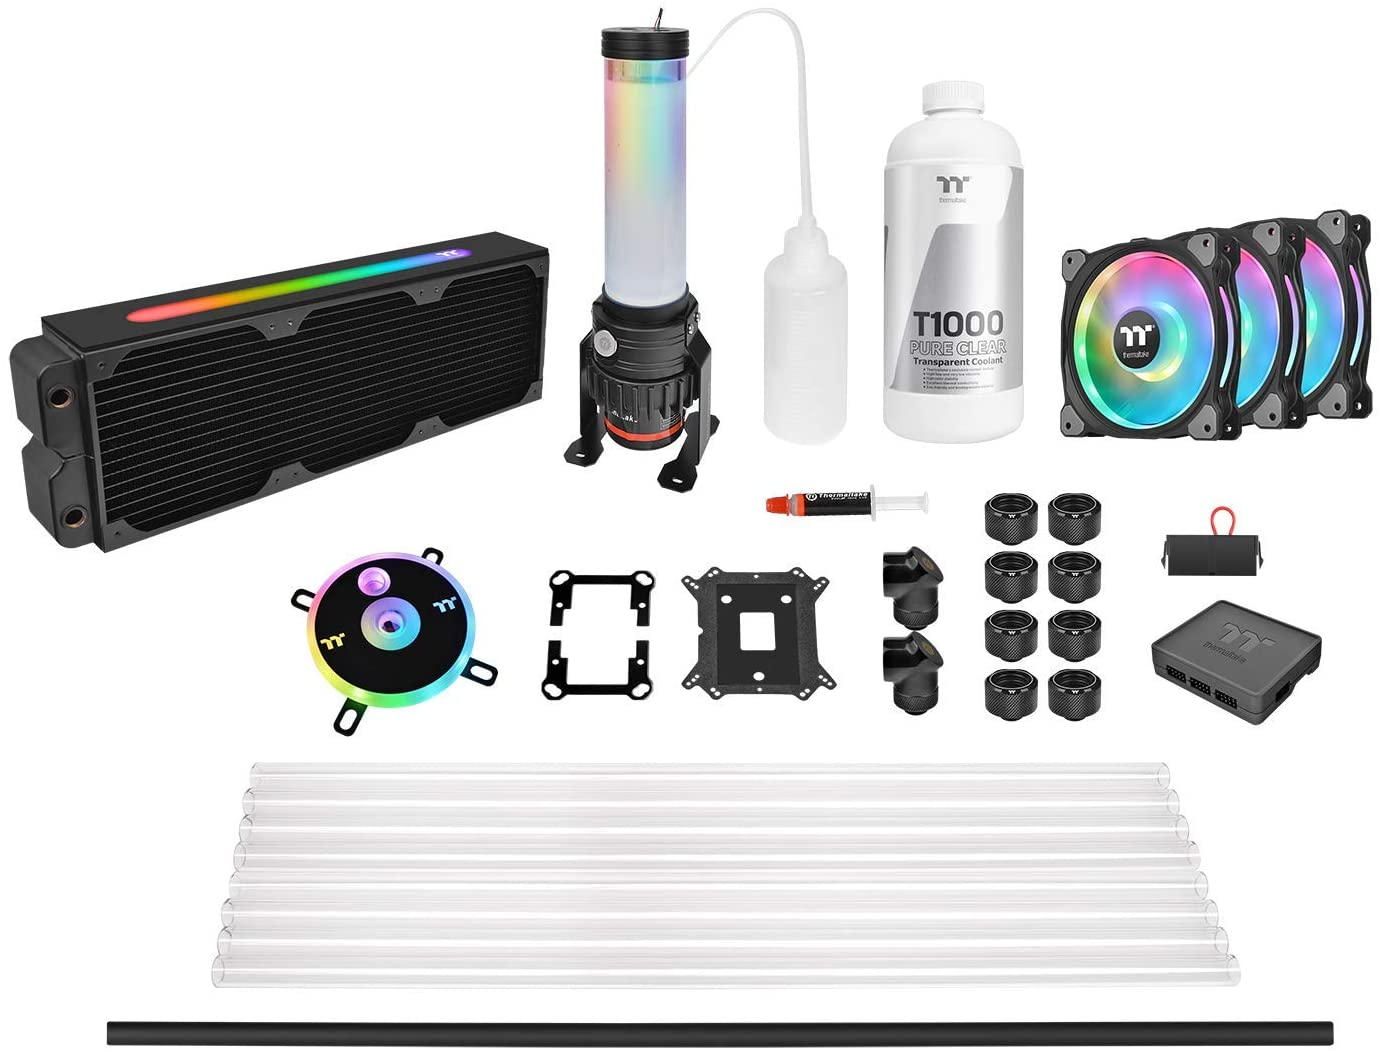 THERMALTAKE CL360 MAX HARD TUBE LIQUID COOLING KIT